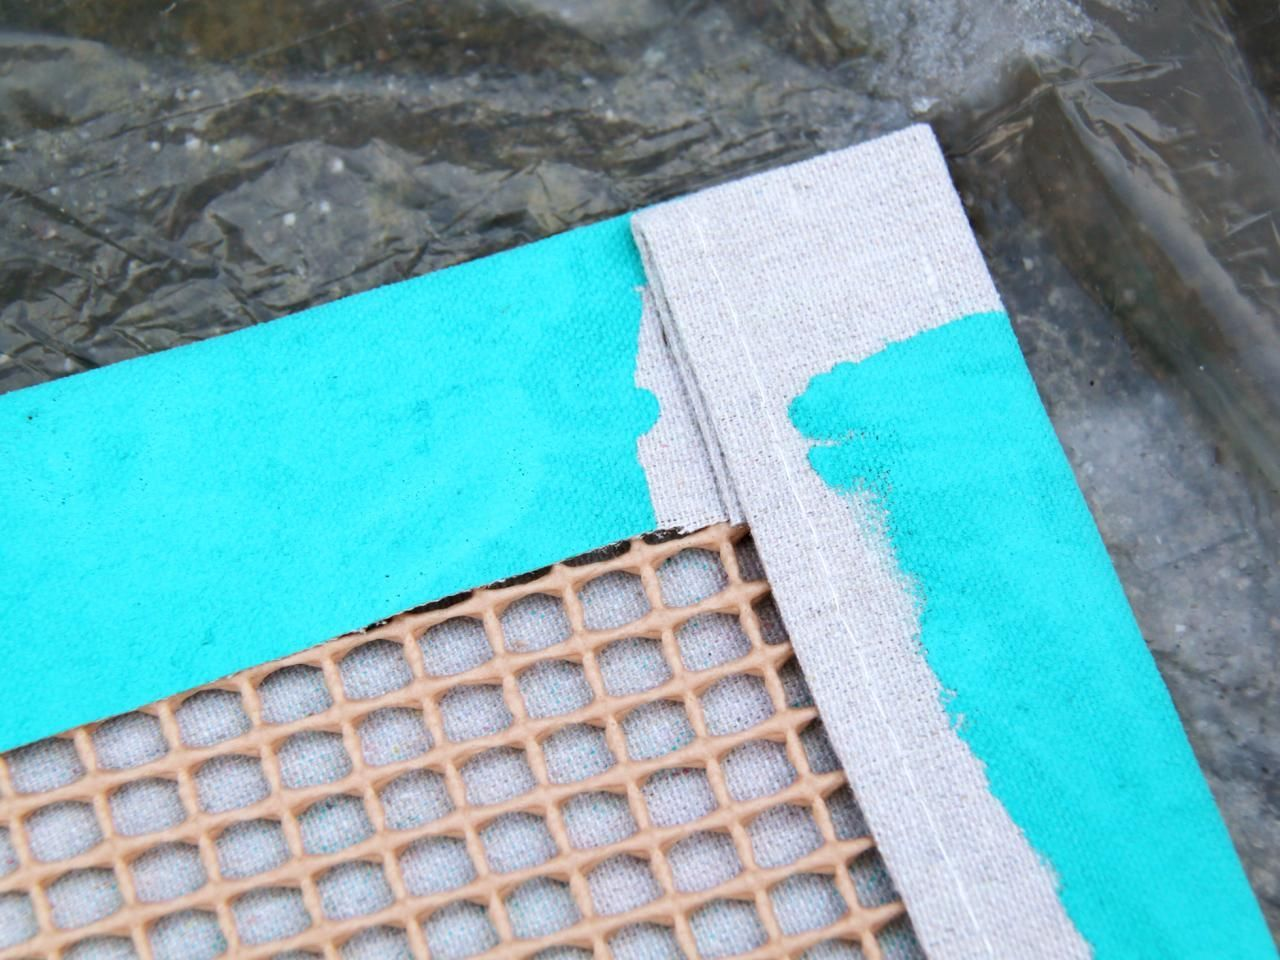 How To Turn A Canvas Drop Cloth Into An Outdoor Rug Diy Network Has Instuctions On How To Make An Outdoor Rug In 2020 Patio Rug Diy Drop Cloth Rug Canvas Drop Cloths